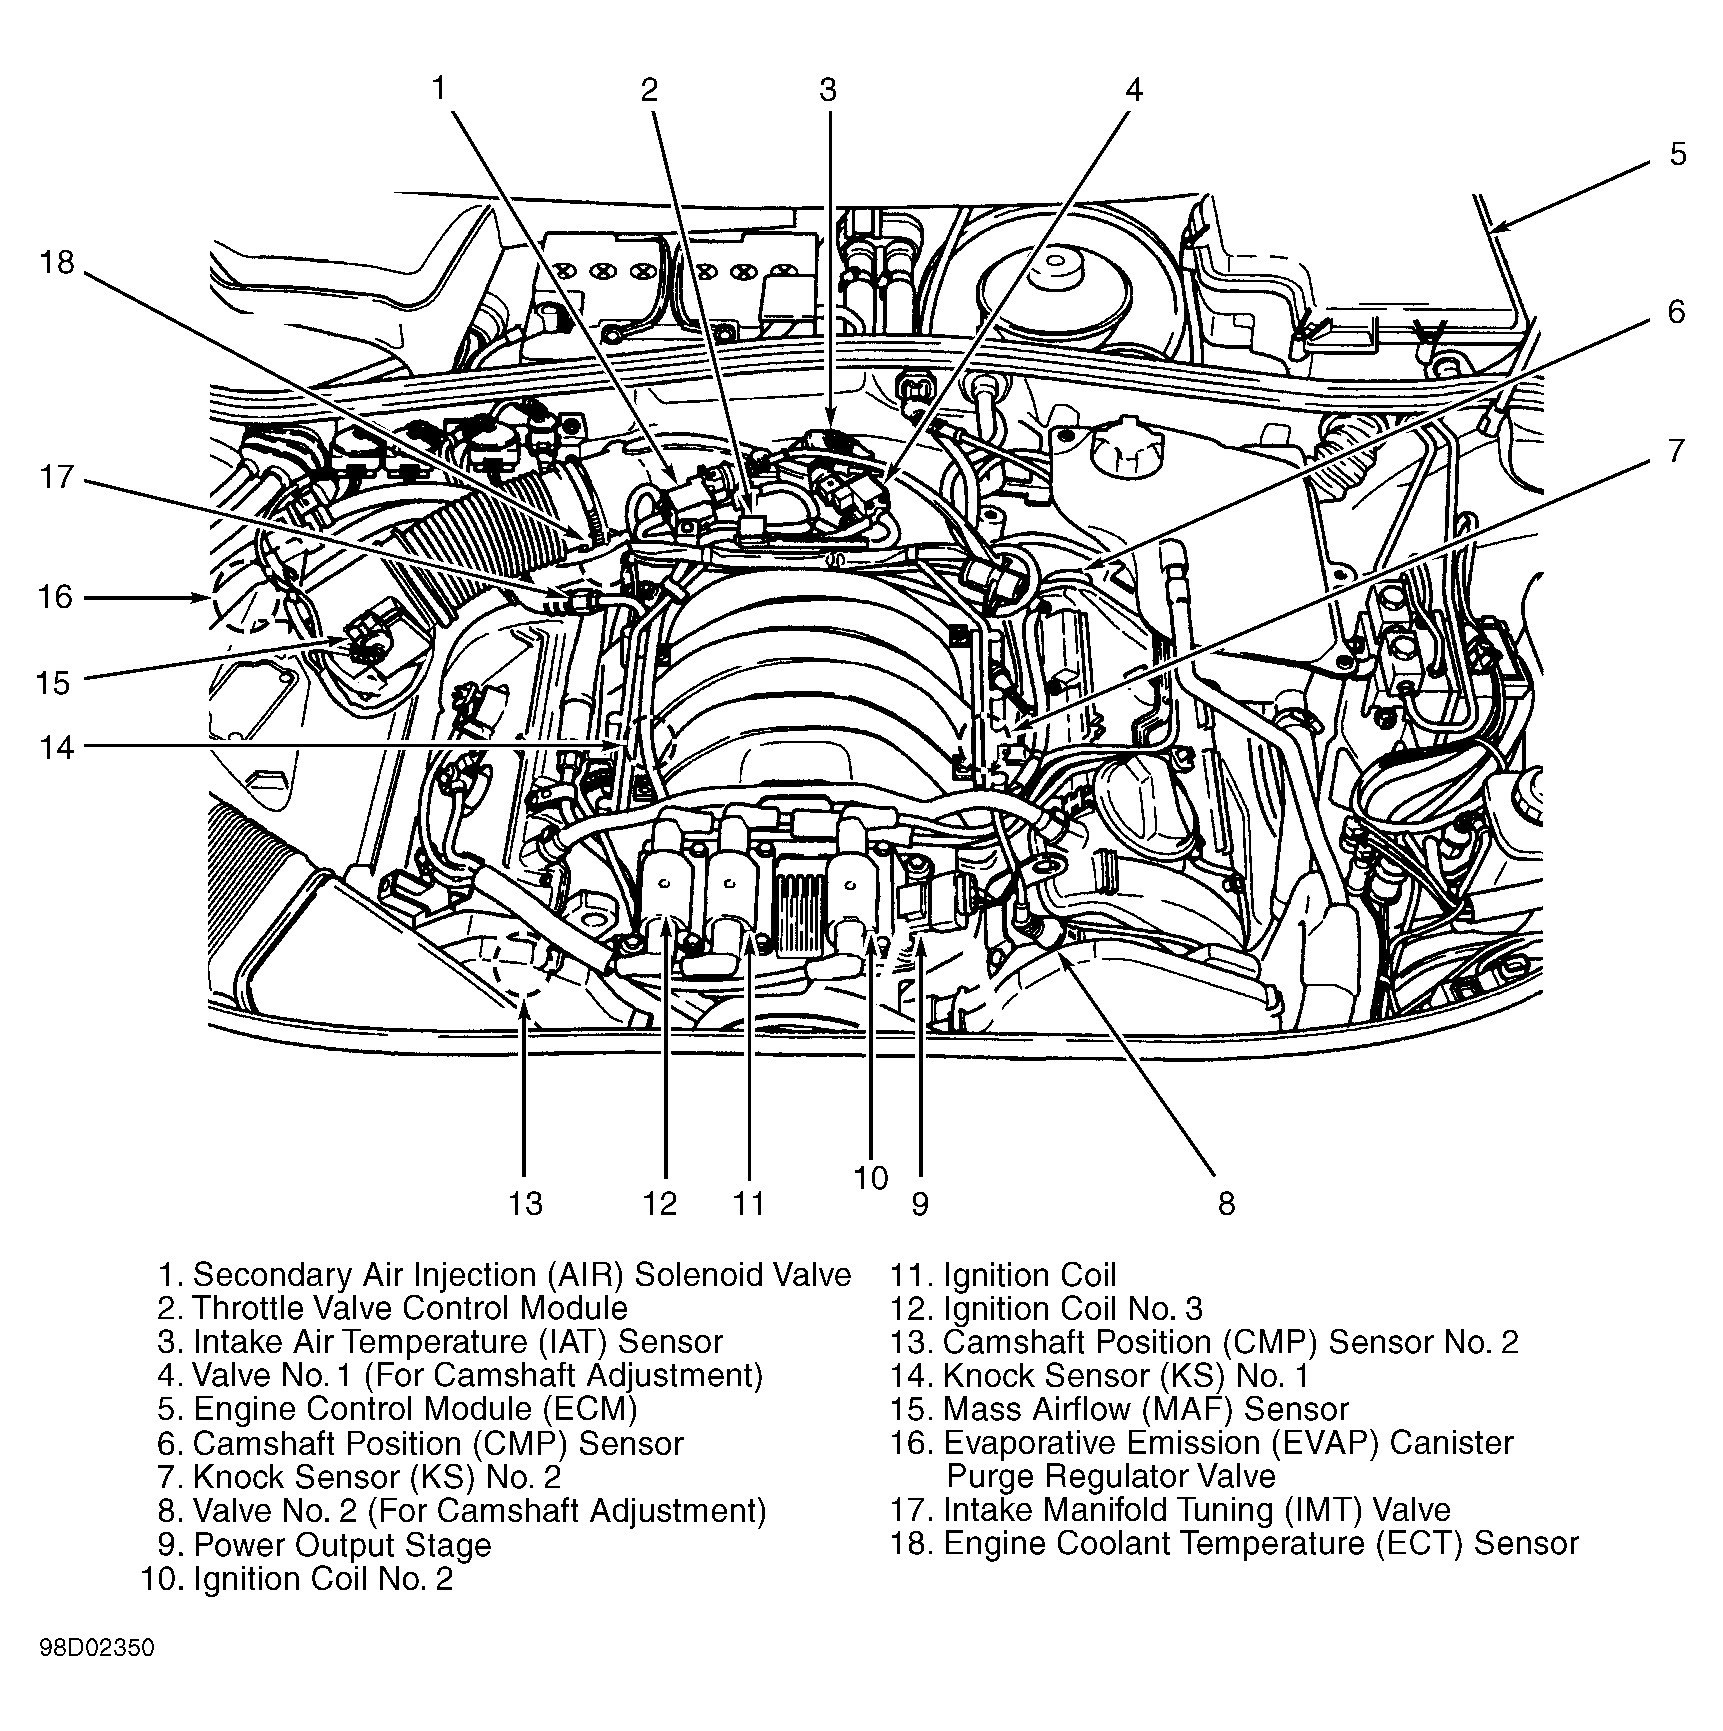 2006 Grand Prix Engine Diagram 3 9 Liter Dodge Engine Diagram Wiring Diagram Datasource Of 2006 Grand Prix Engine Diagram